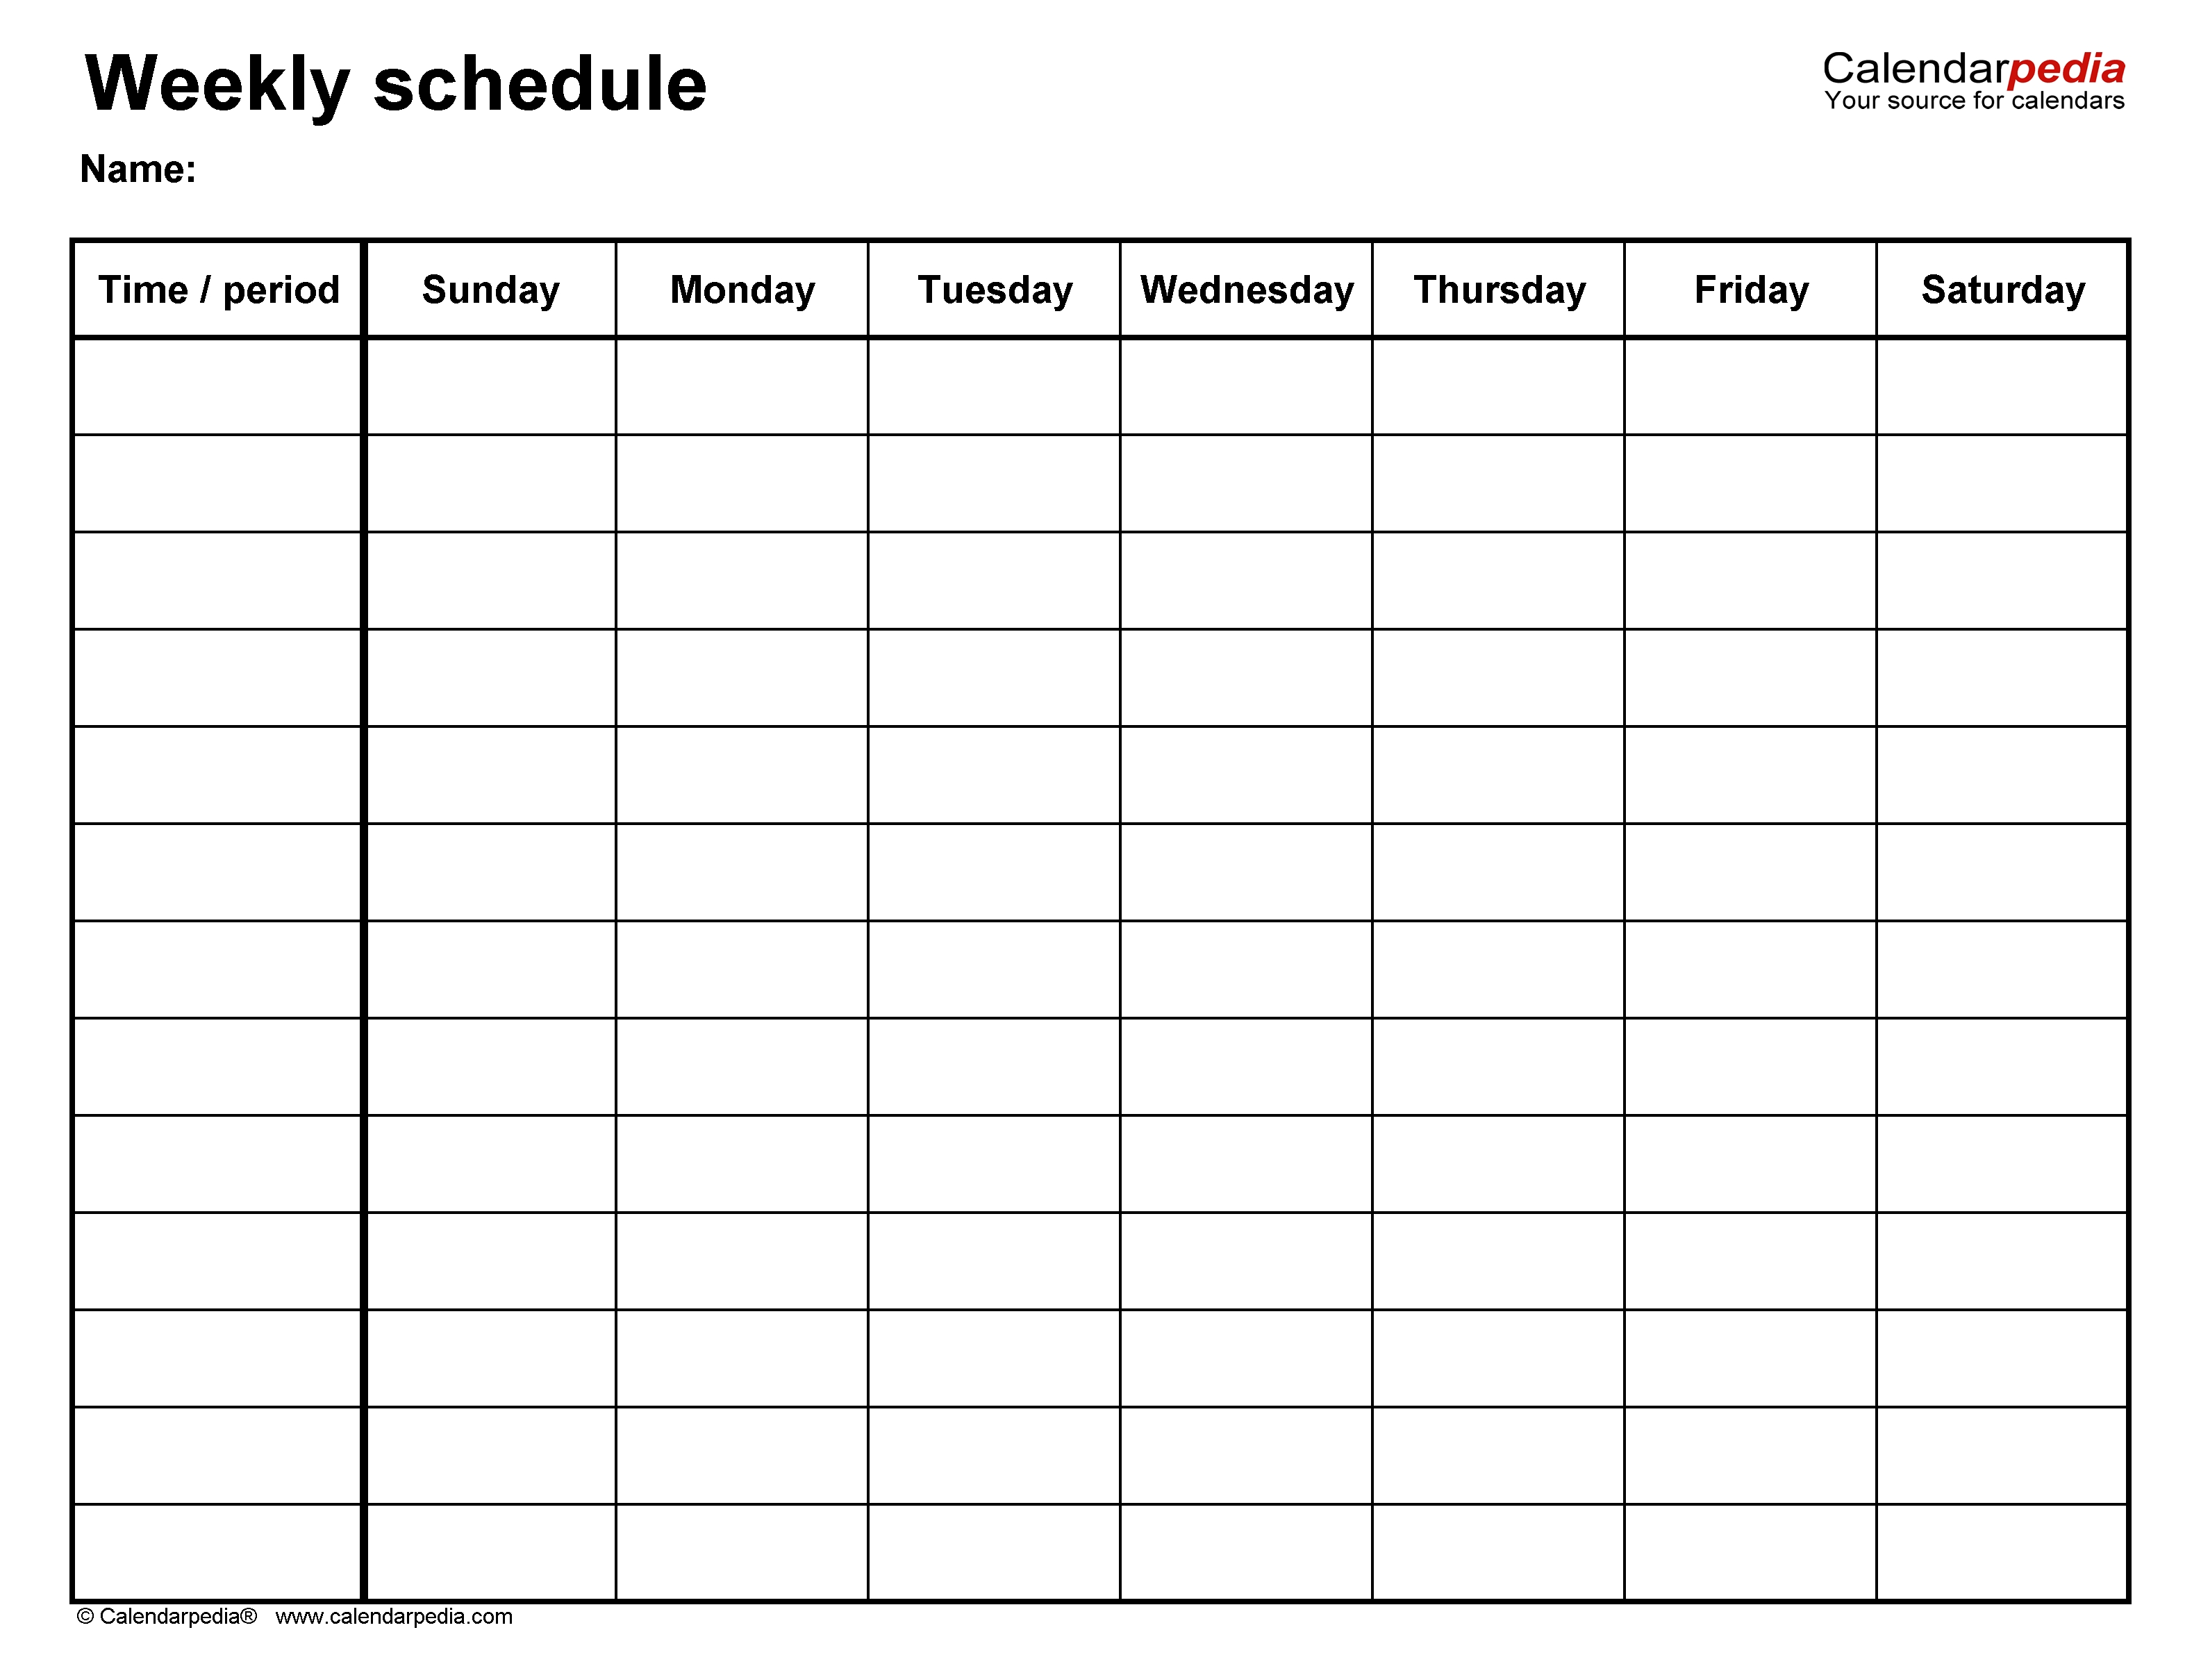 Free Weekly Schedule Templates For Word - 18 Templates-Monday To Friday Word Template